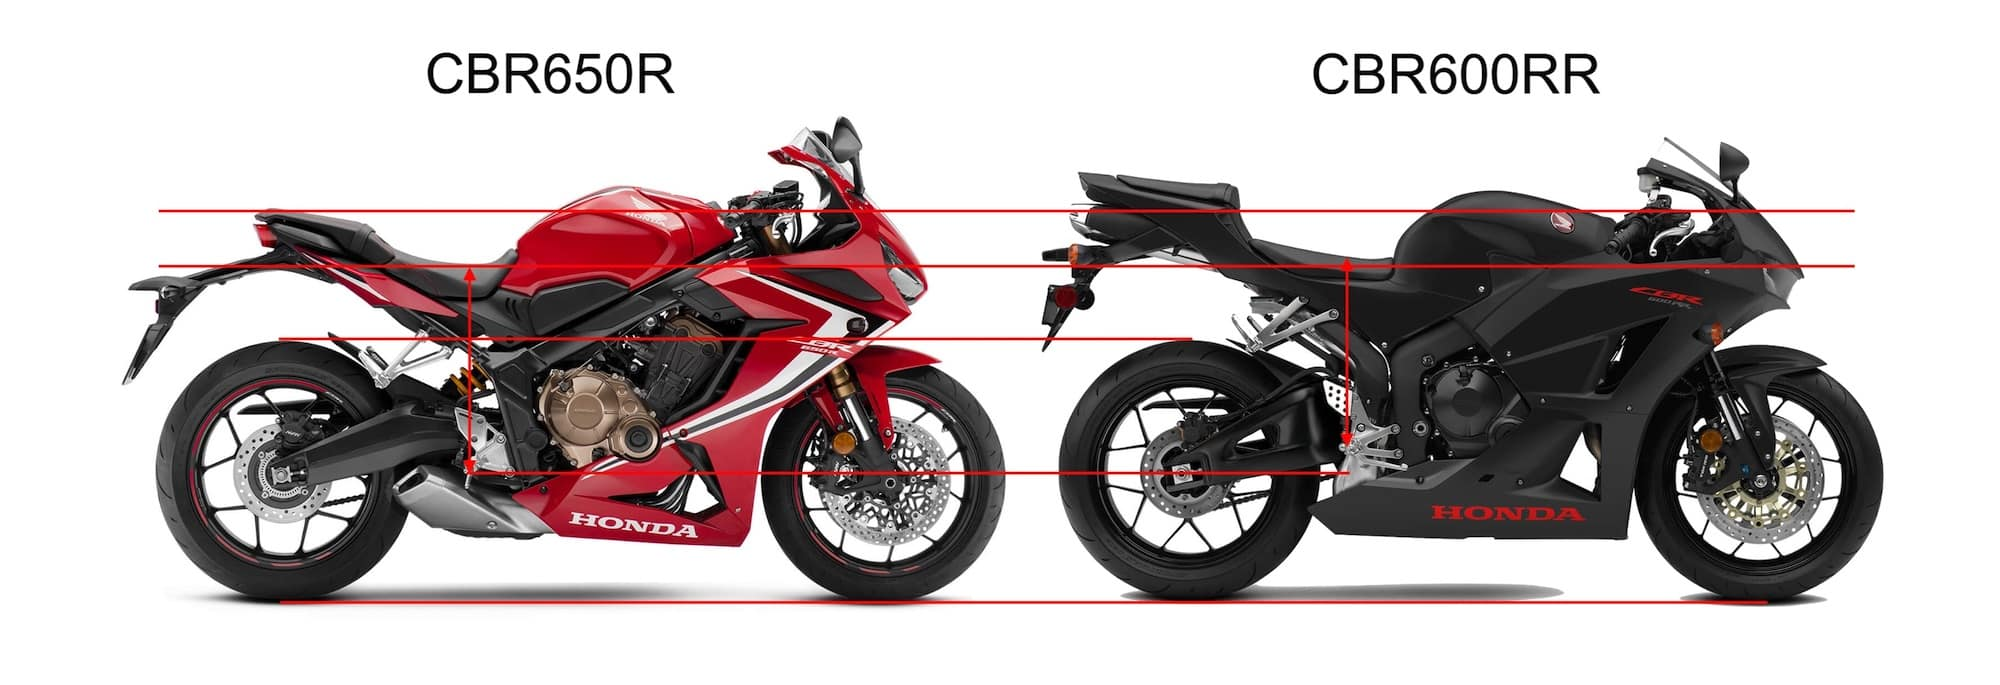 Comparing riding position of Honda CBR650R and Honda CBR600RR